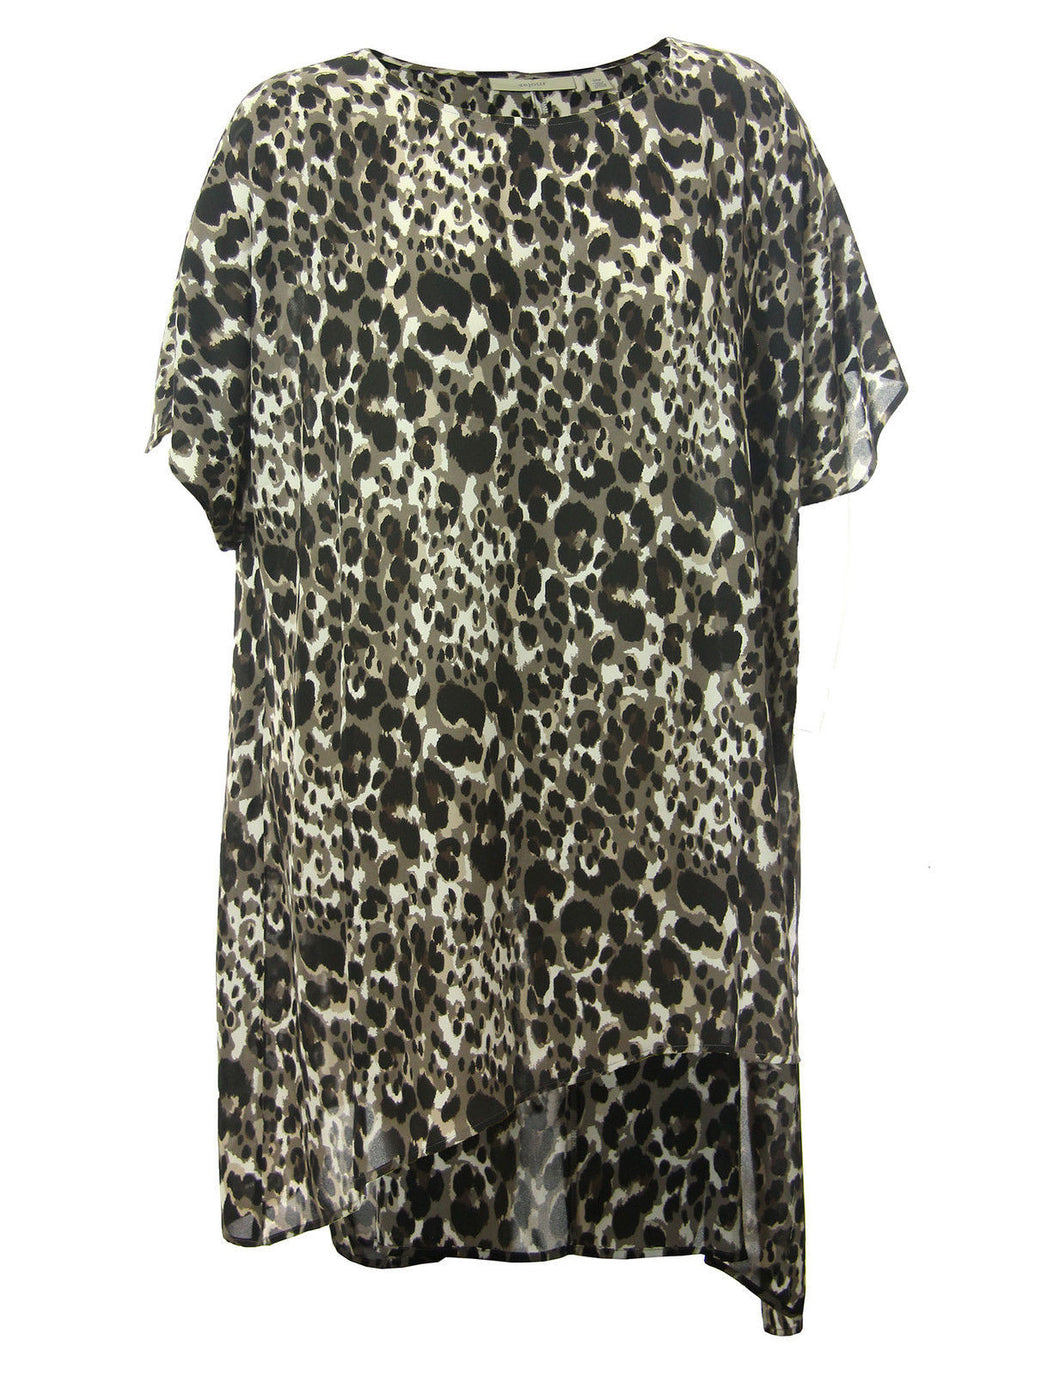 Sejour Multi Color Animal Print Short Sleeve Asymmetric Hem Blouse